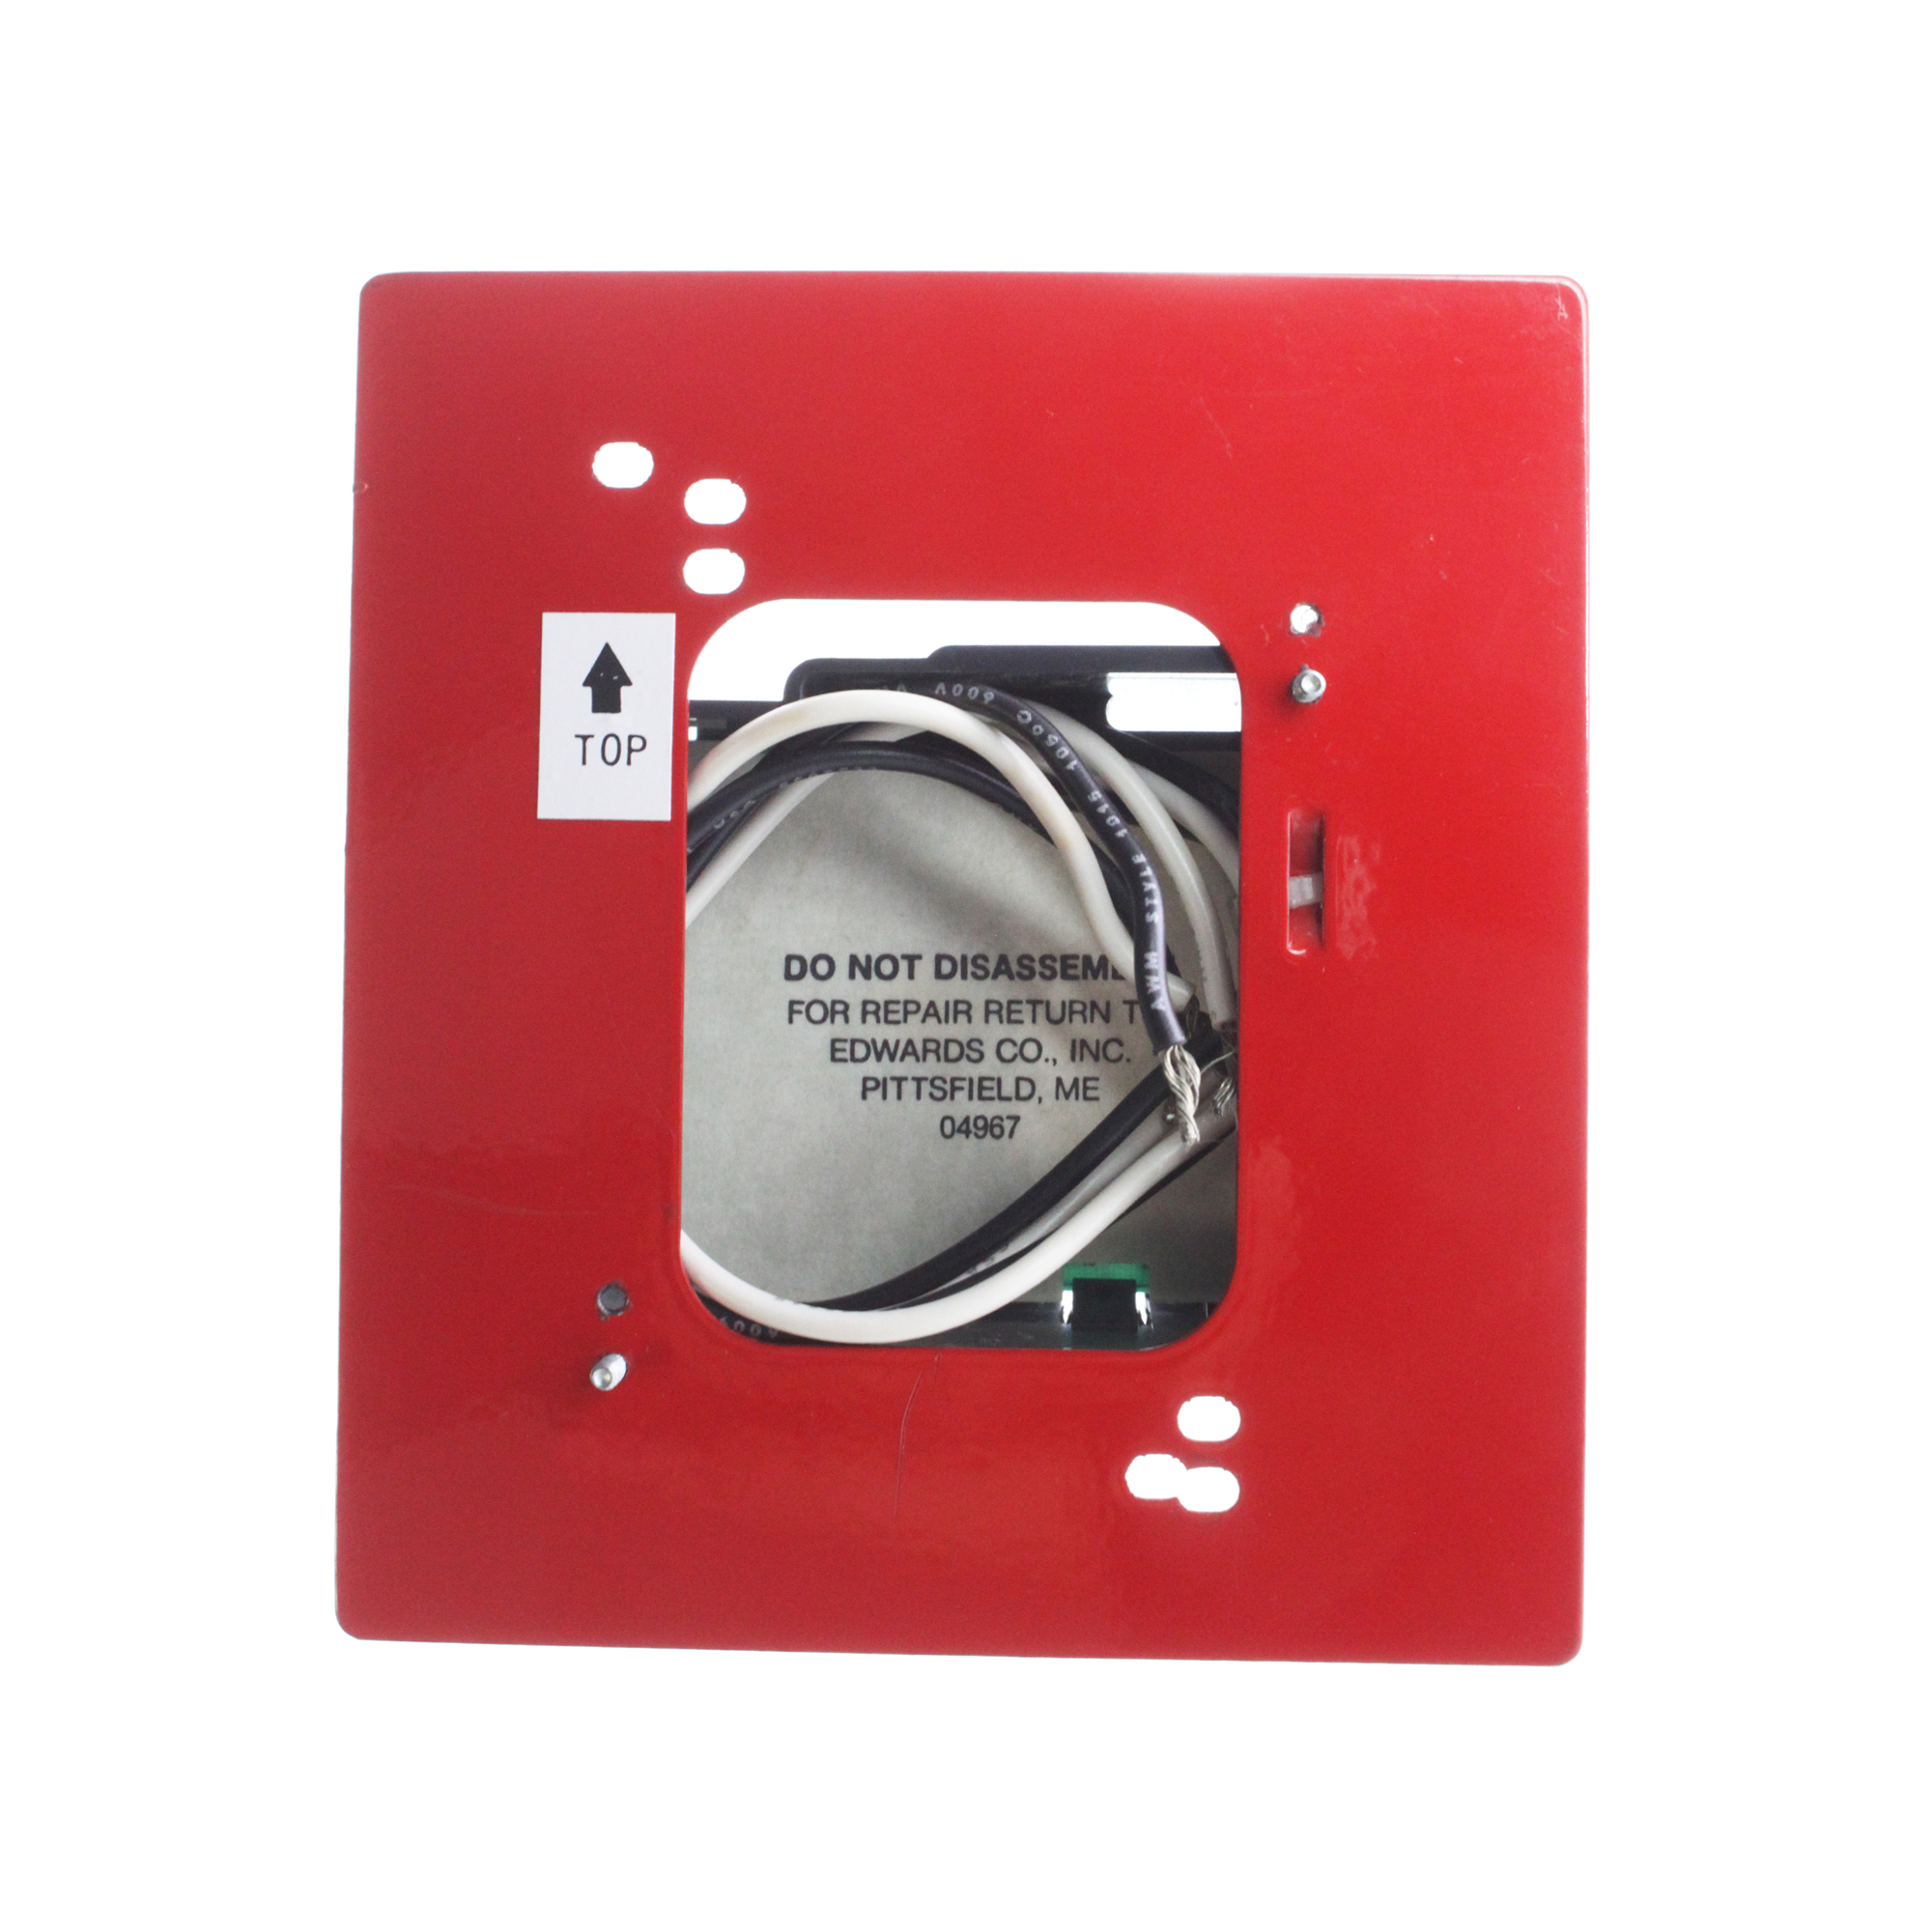 Edwards EST 6296B-100 Manual Pull Station Transponder Module, Red